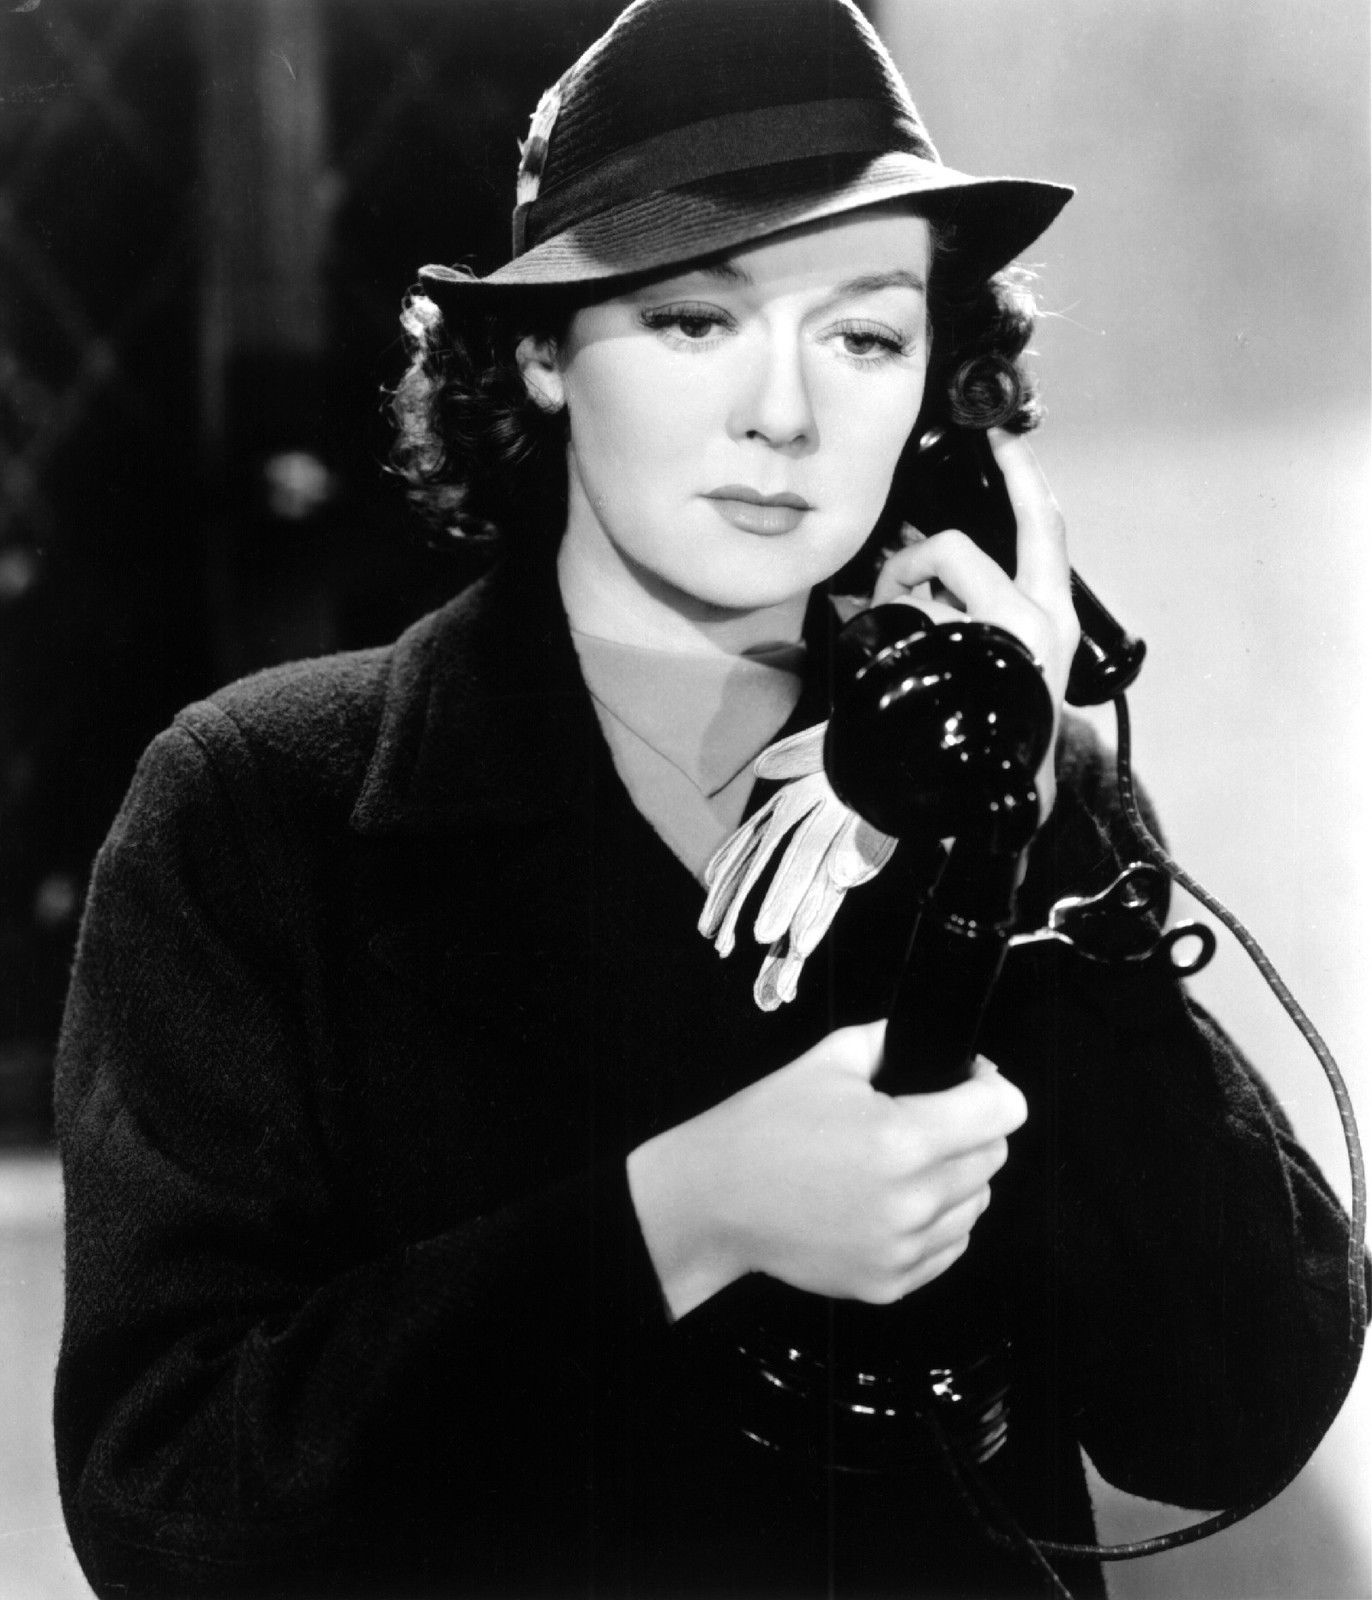 Night Must Fall Rosalind Russell 8x10 Photo D9867 Ebay Rosalind Russell 8x10 Photo Old Hollywood